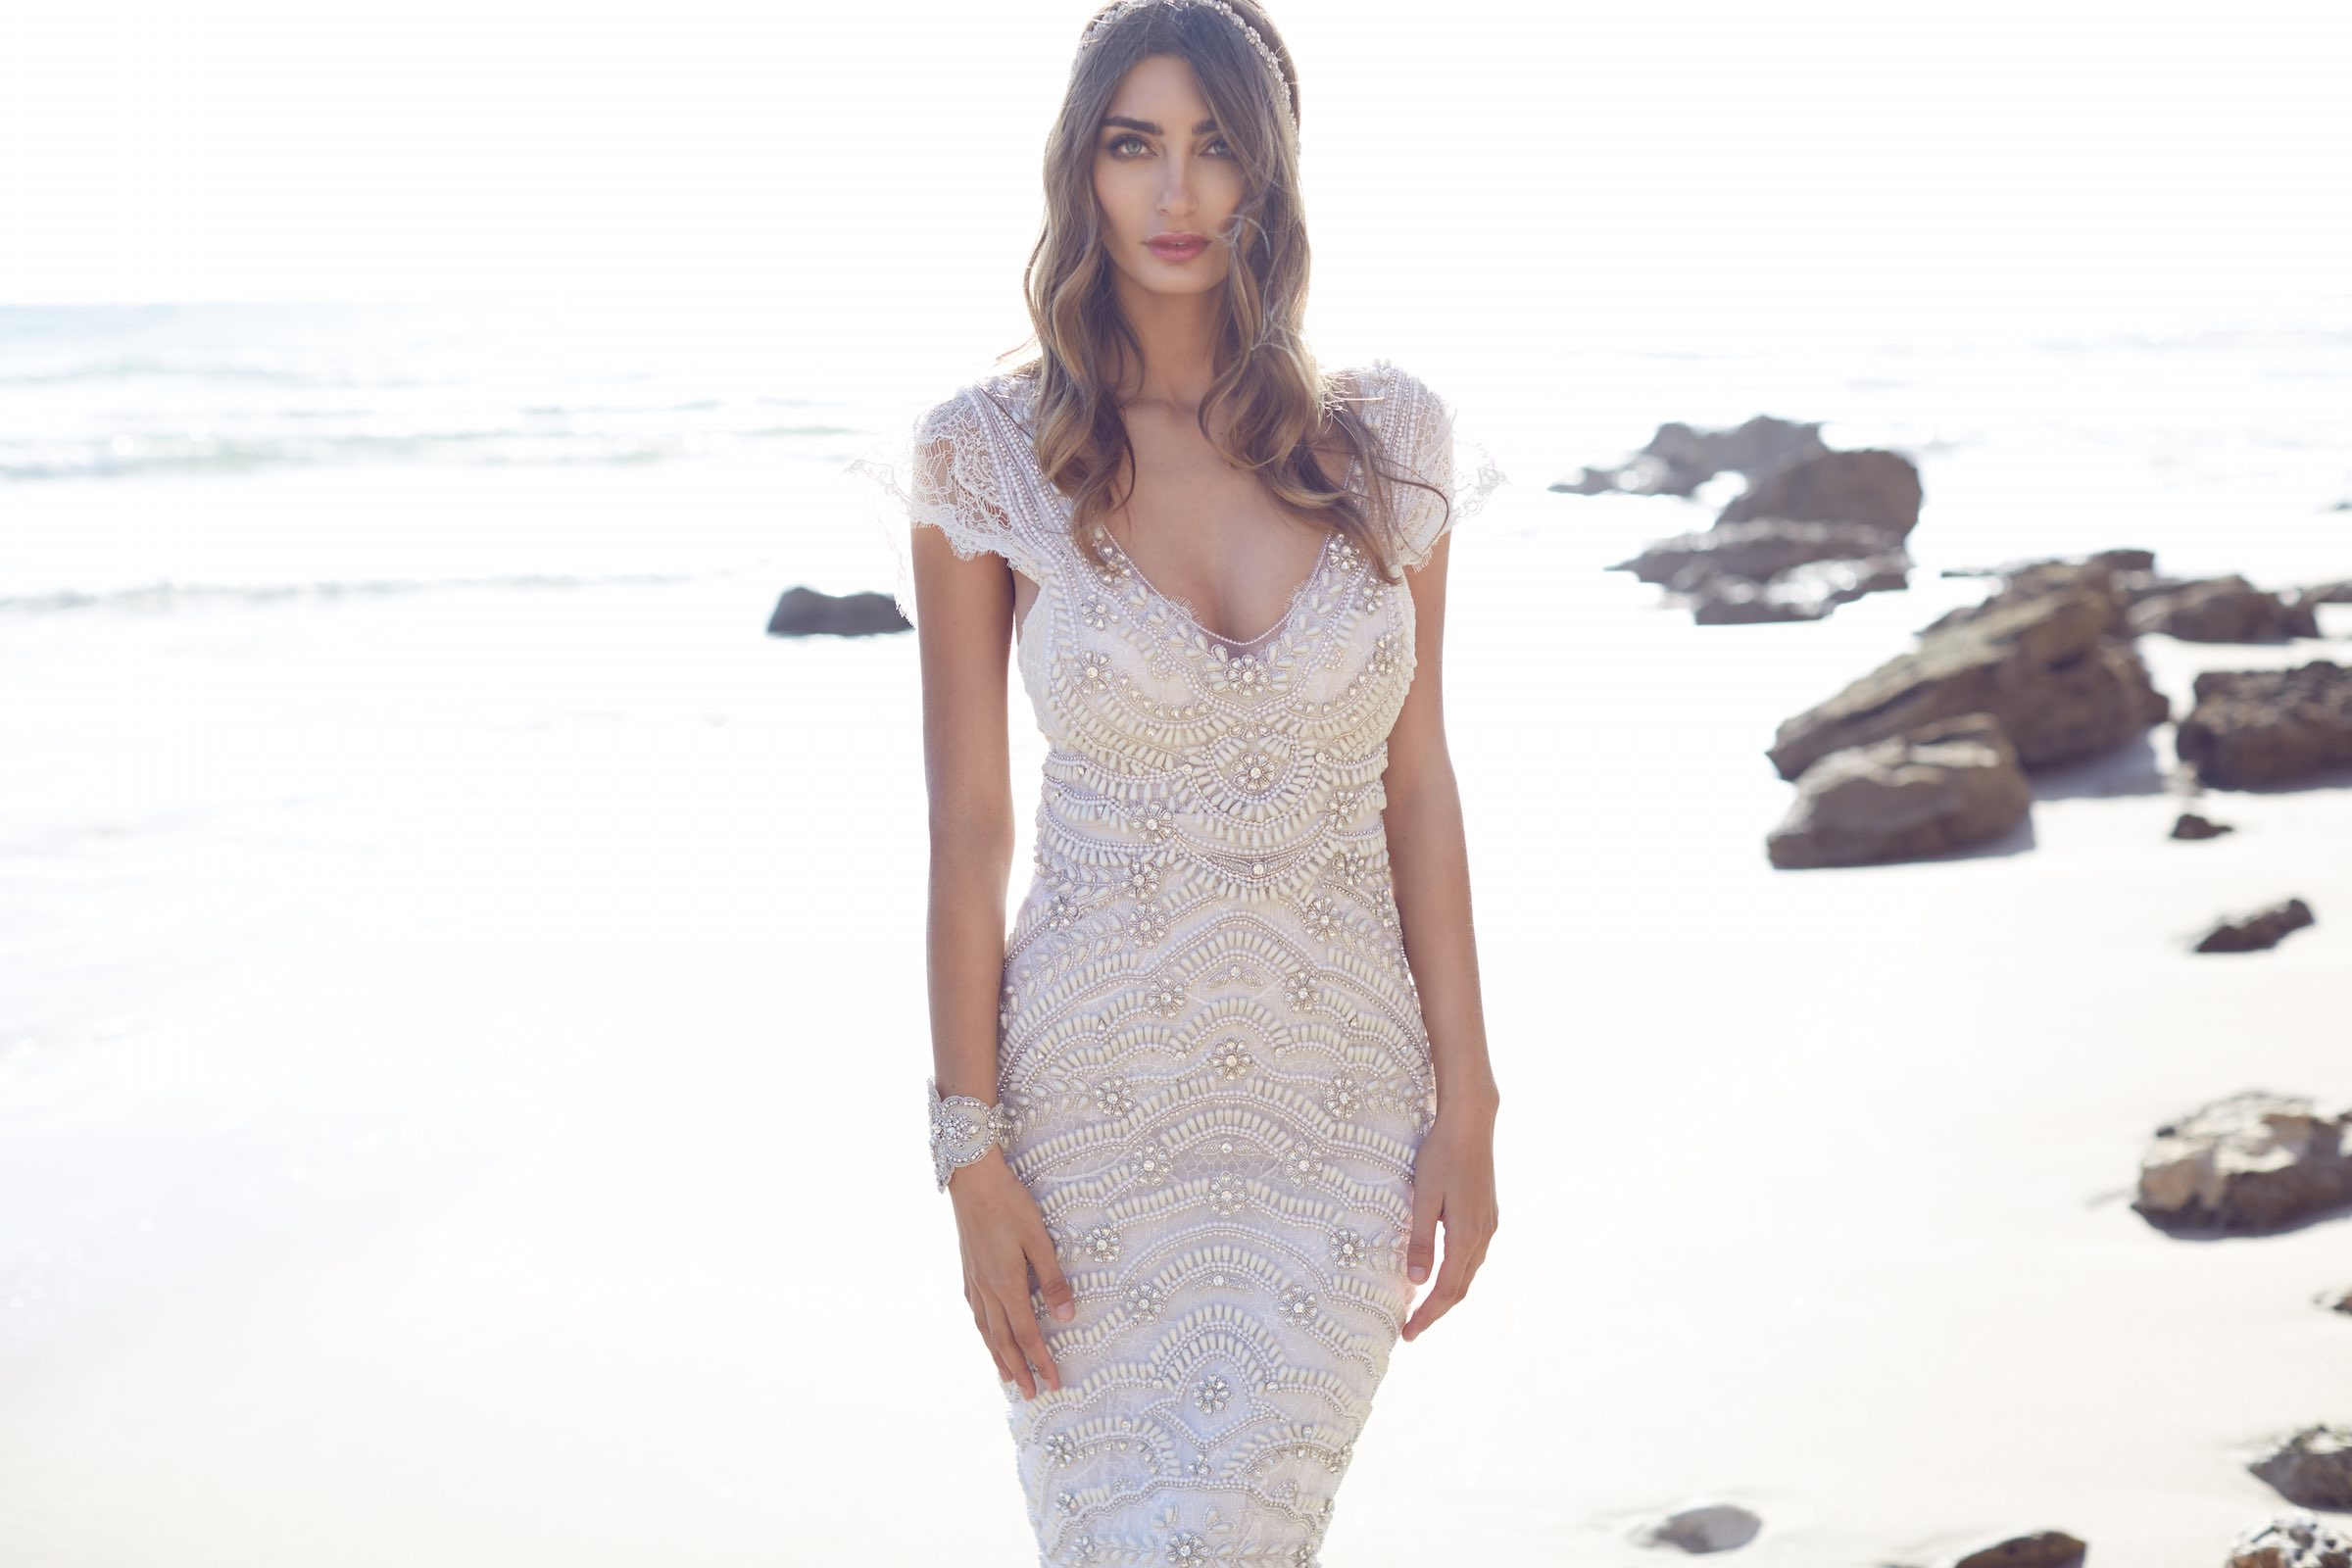 Anna Campbell Coco Dress | Vintage inspired embellished wedding dress for bridal beauty